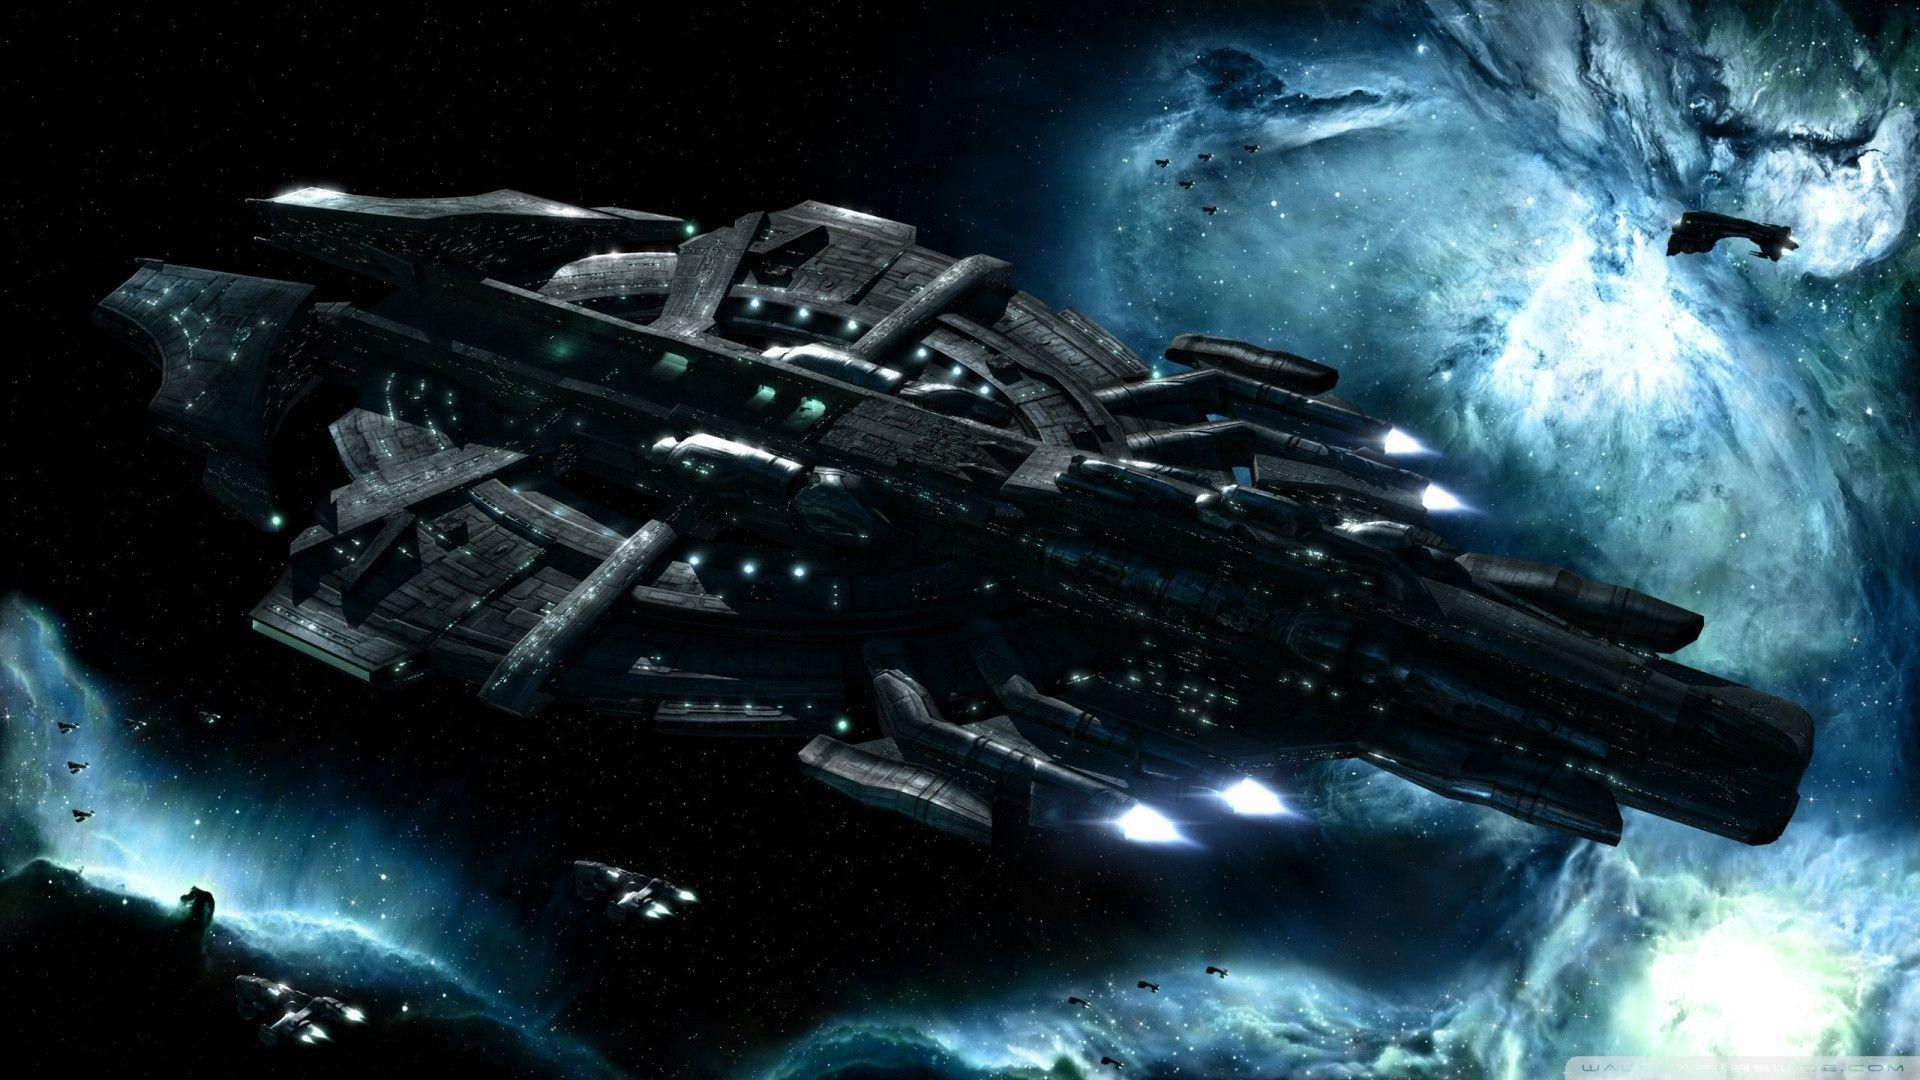 Spaceship Wallpapers 1920X1080 Widescreen 2 HD Wallpapers